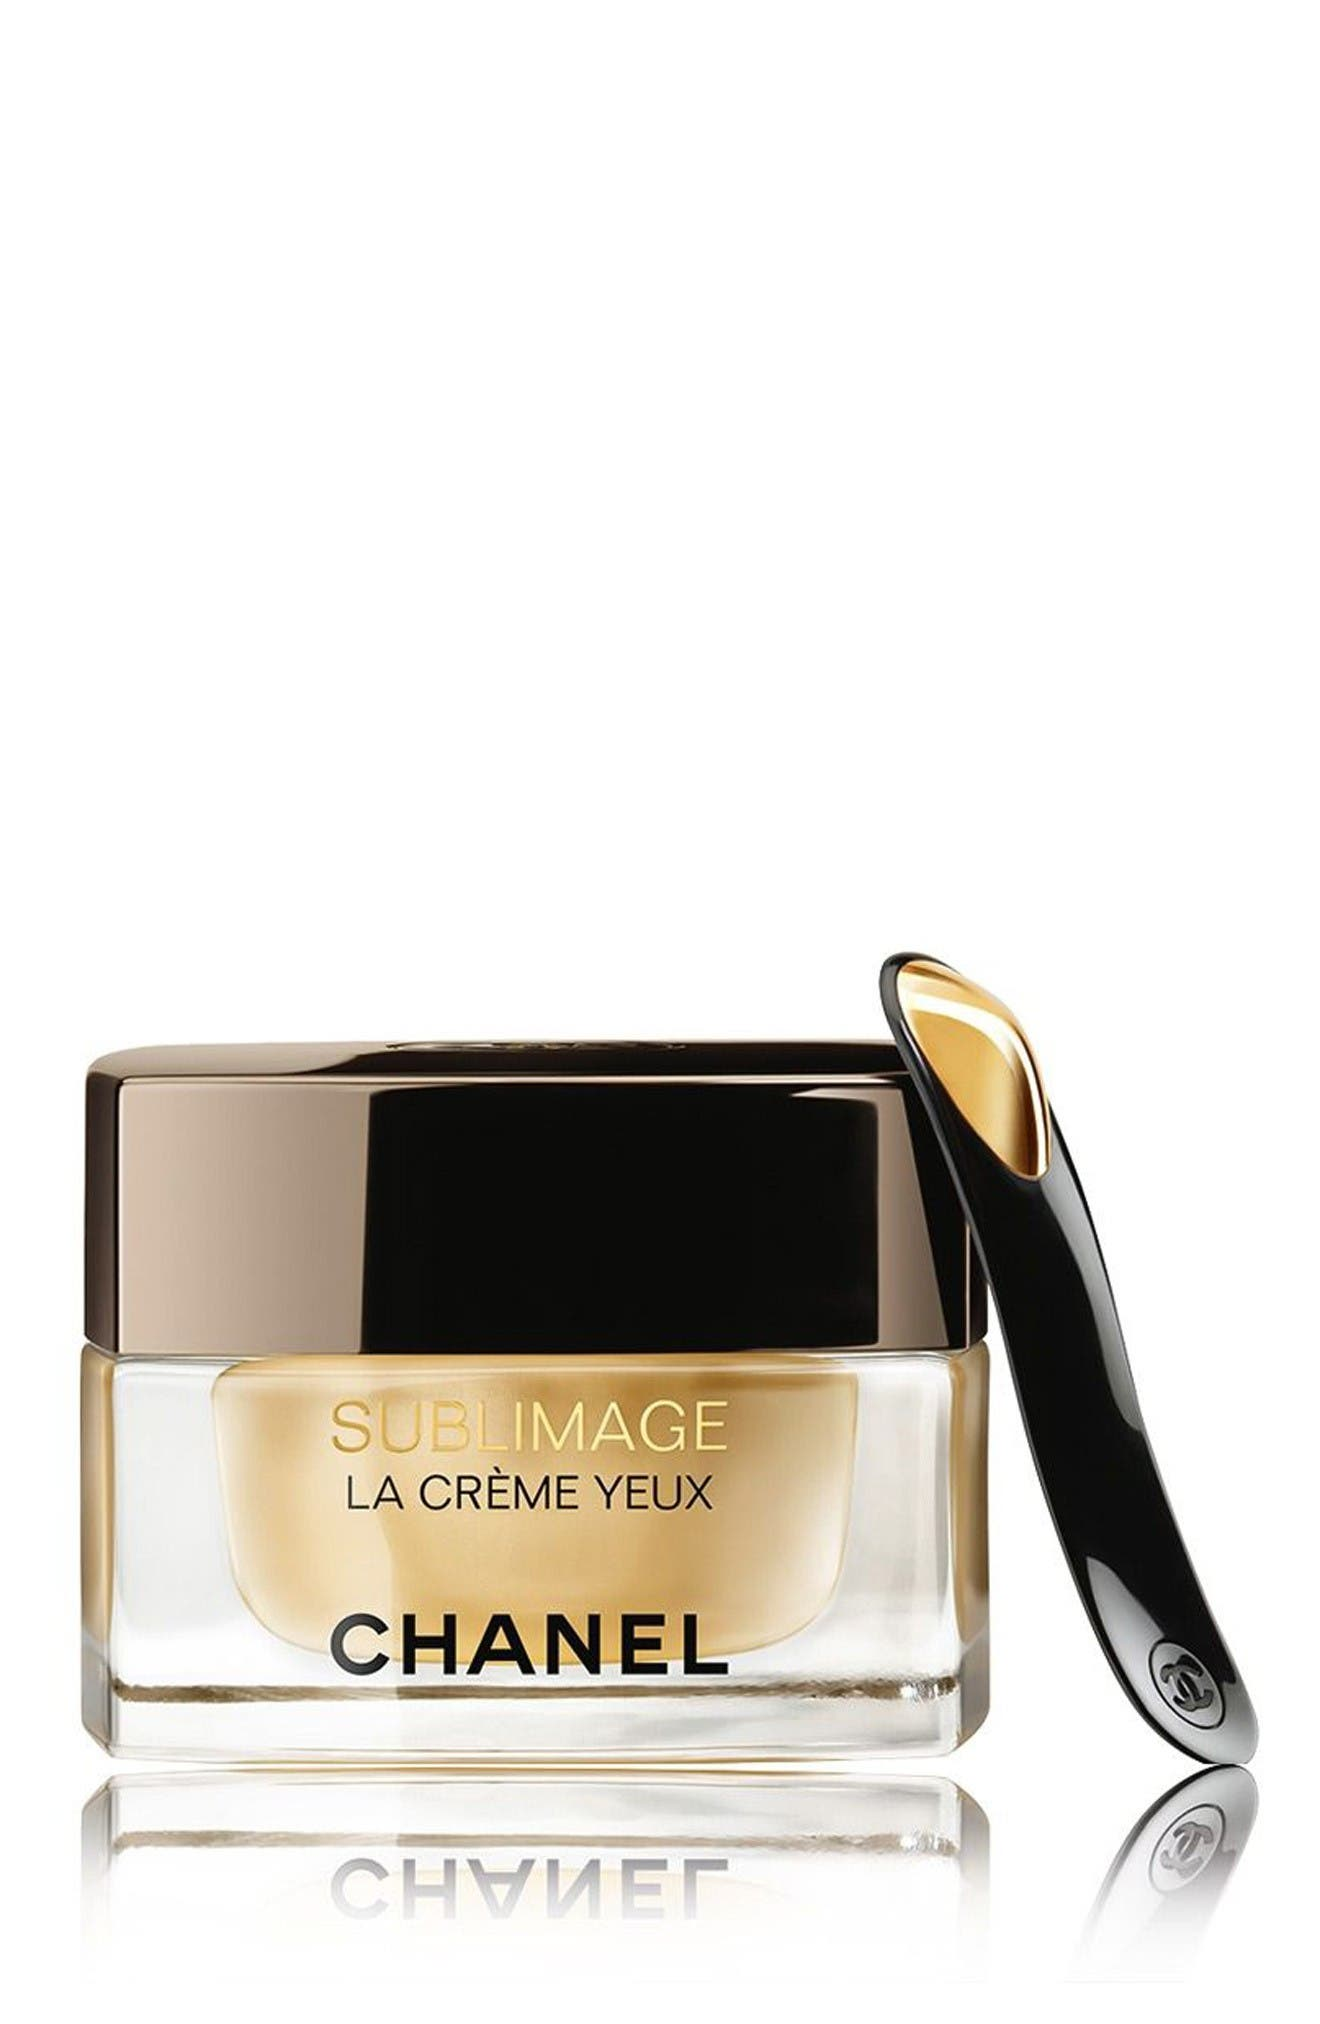 CHANEL SUBLIMAGE LA CRÈME YEUX 